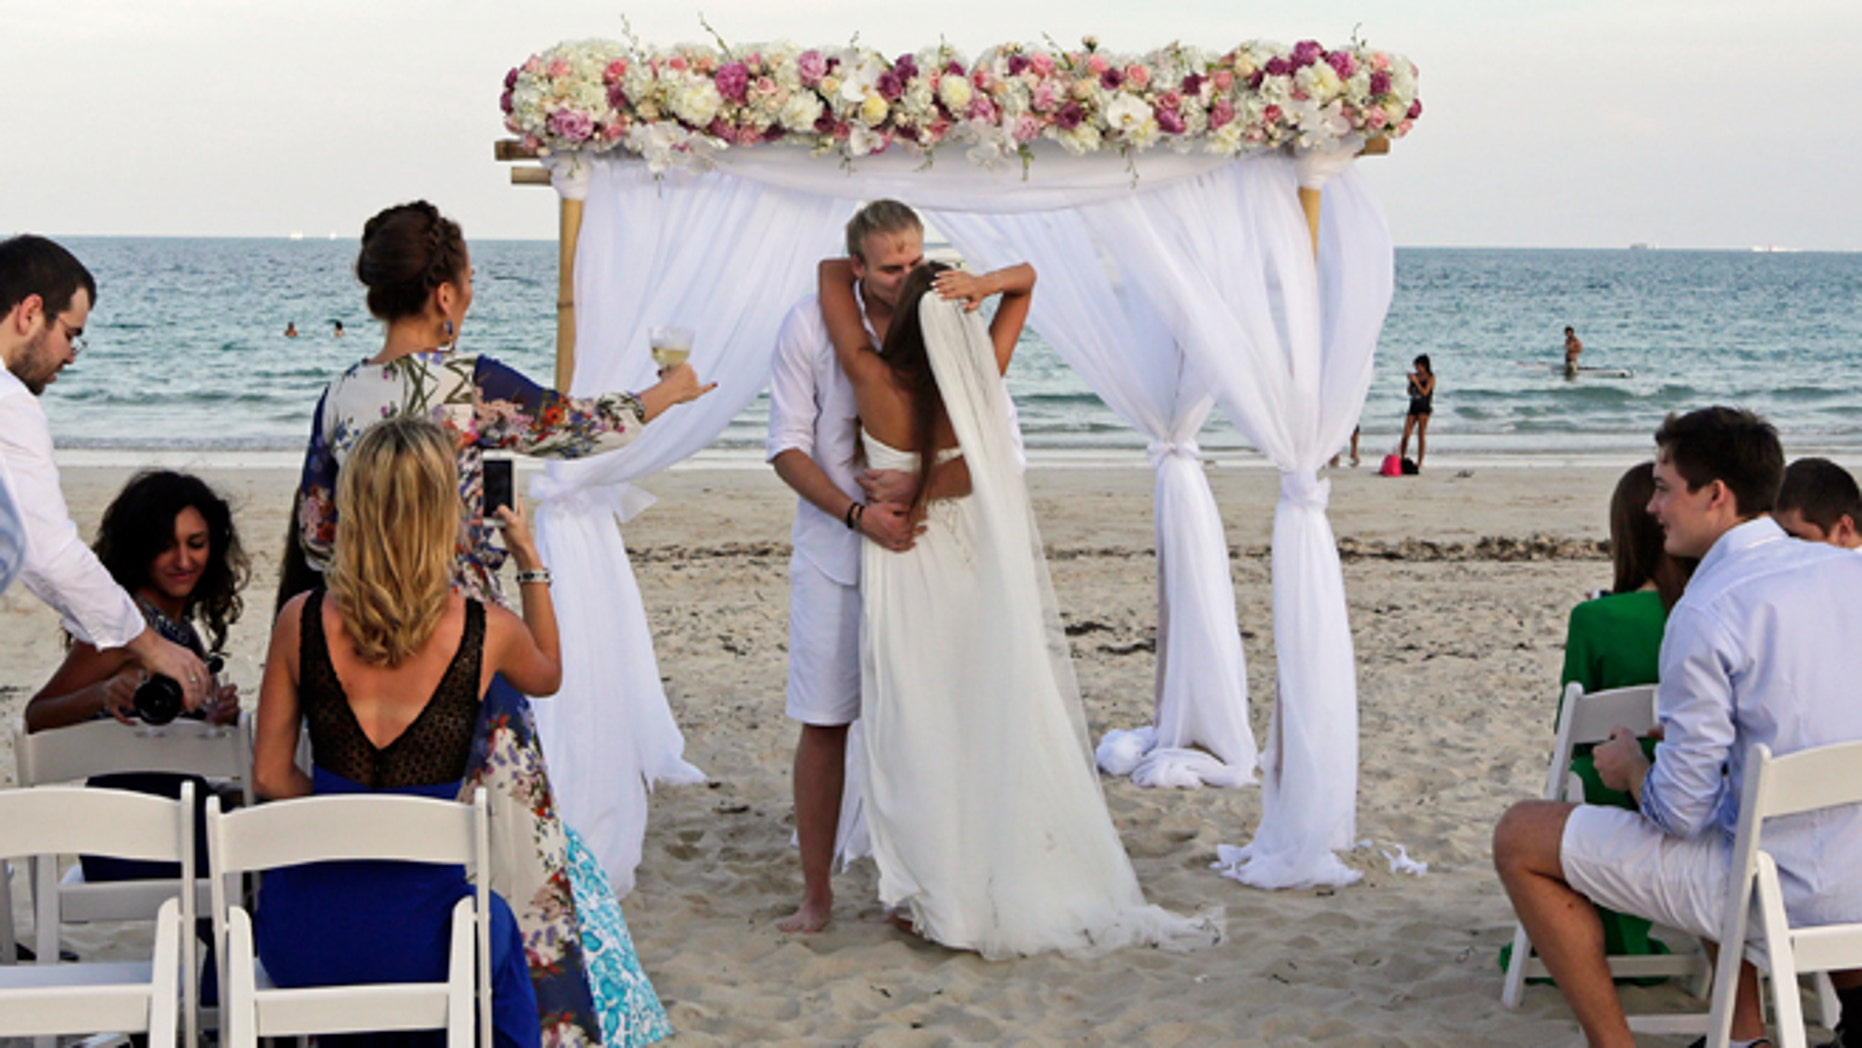 FILE -- Jan. 7, 2015: Tourists Vlad Borankin, the groom, and Daria Borankina, both of Moscow, Russia, kiss during their wedding ceremony at South Pointe area in Miami Beach, Fla.